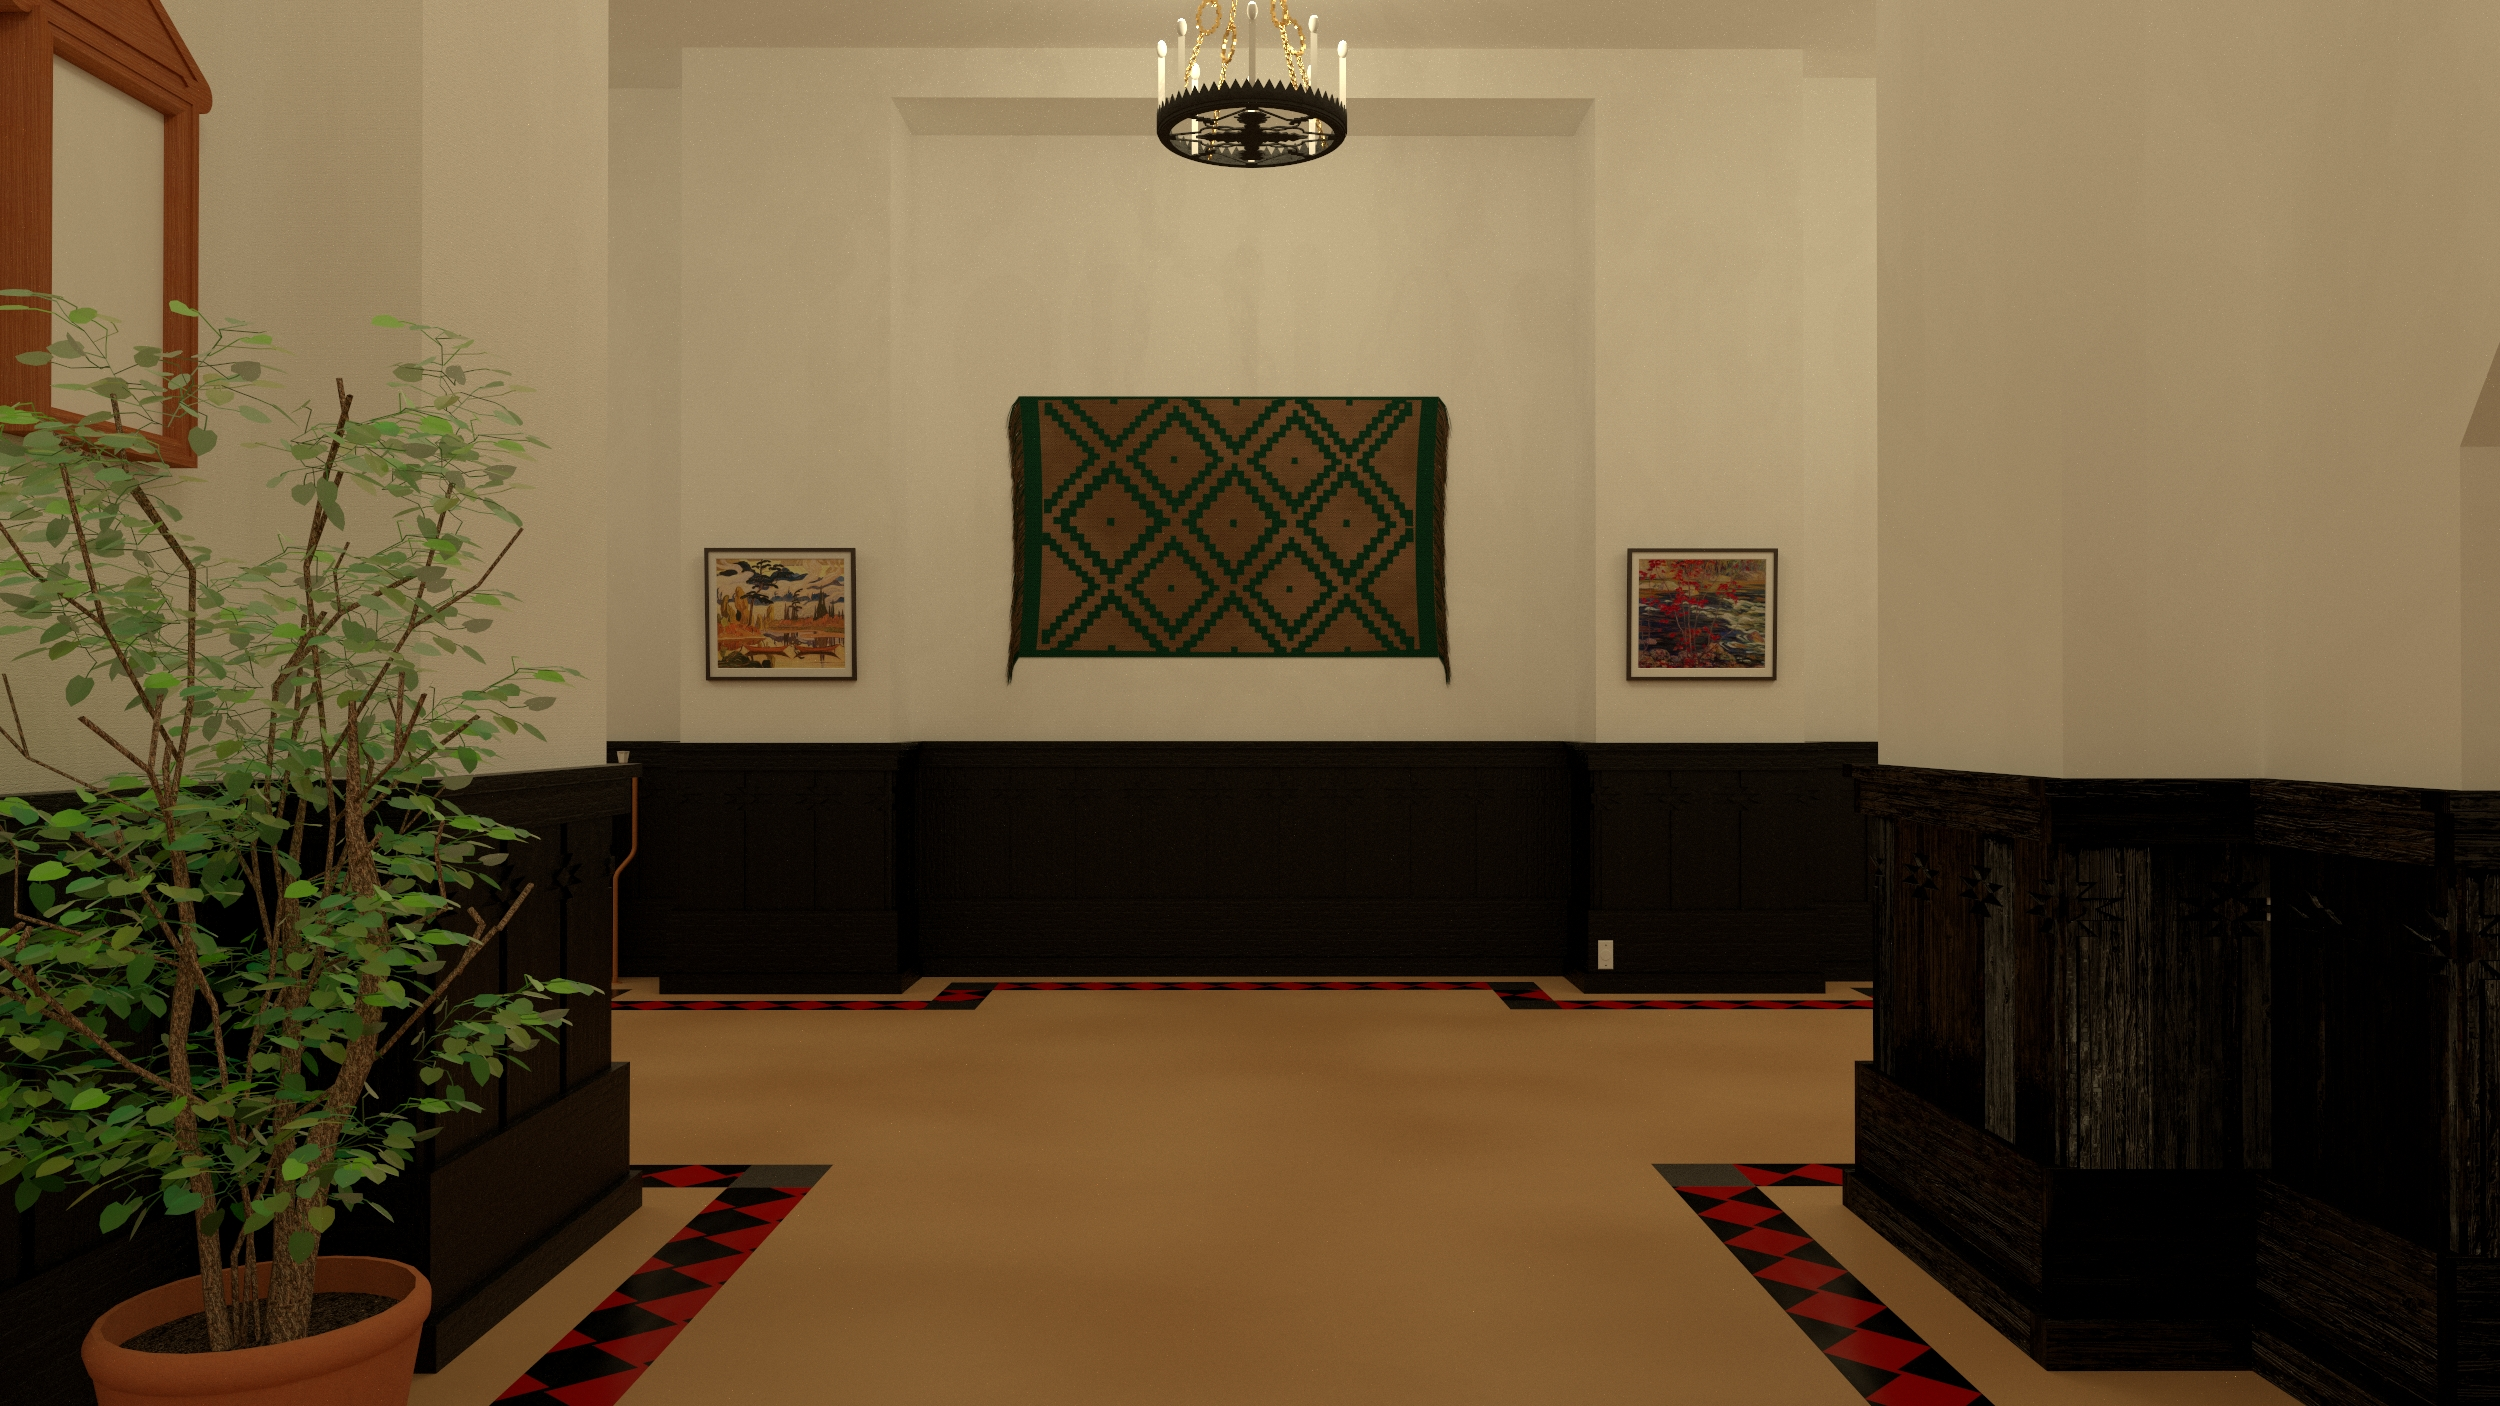 The green wall rug